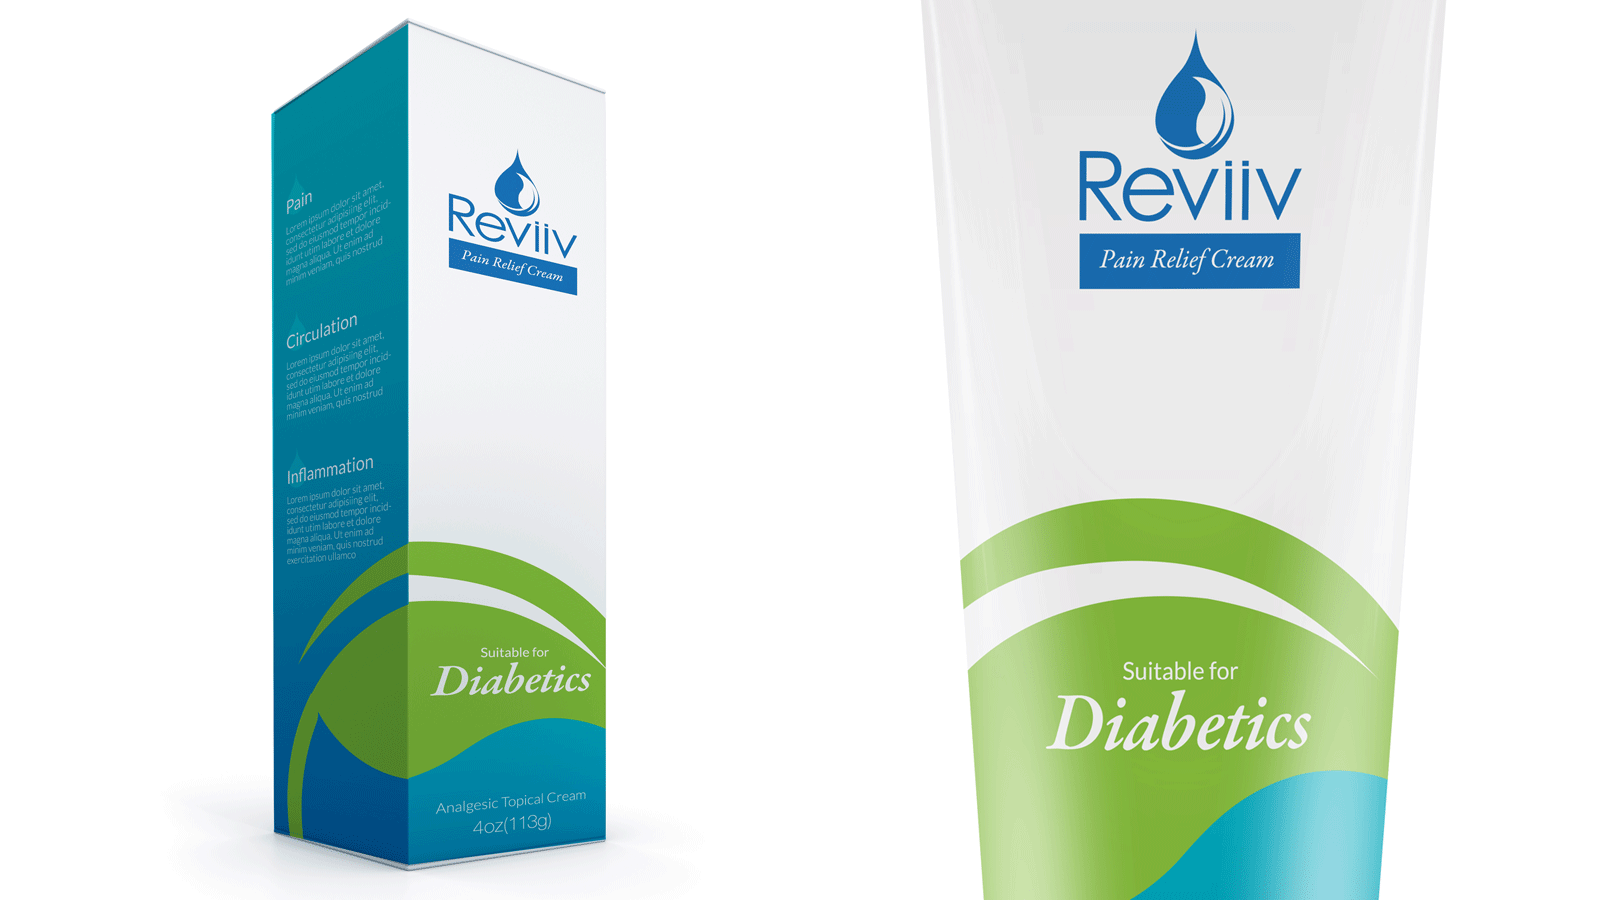 Reviiv package design